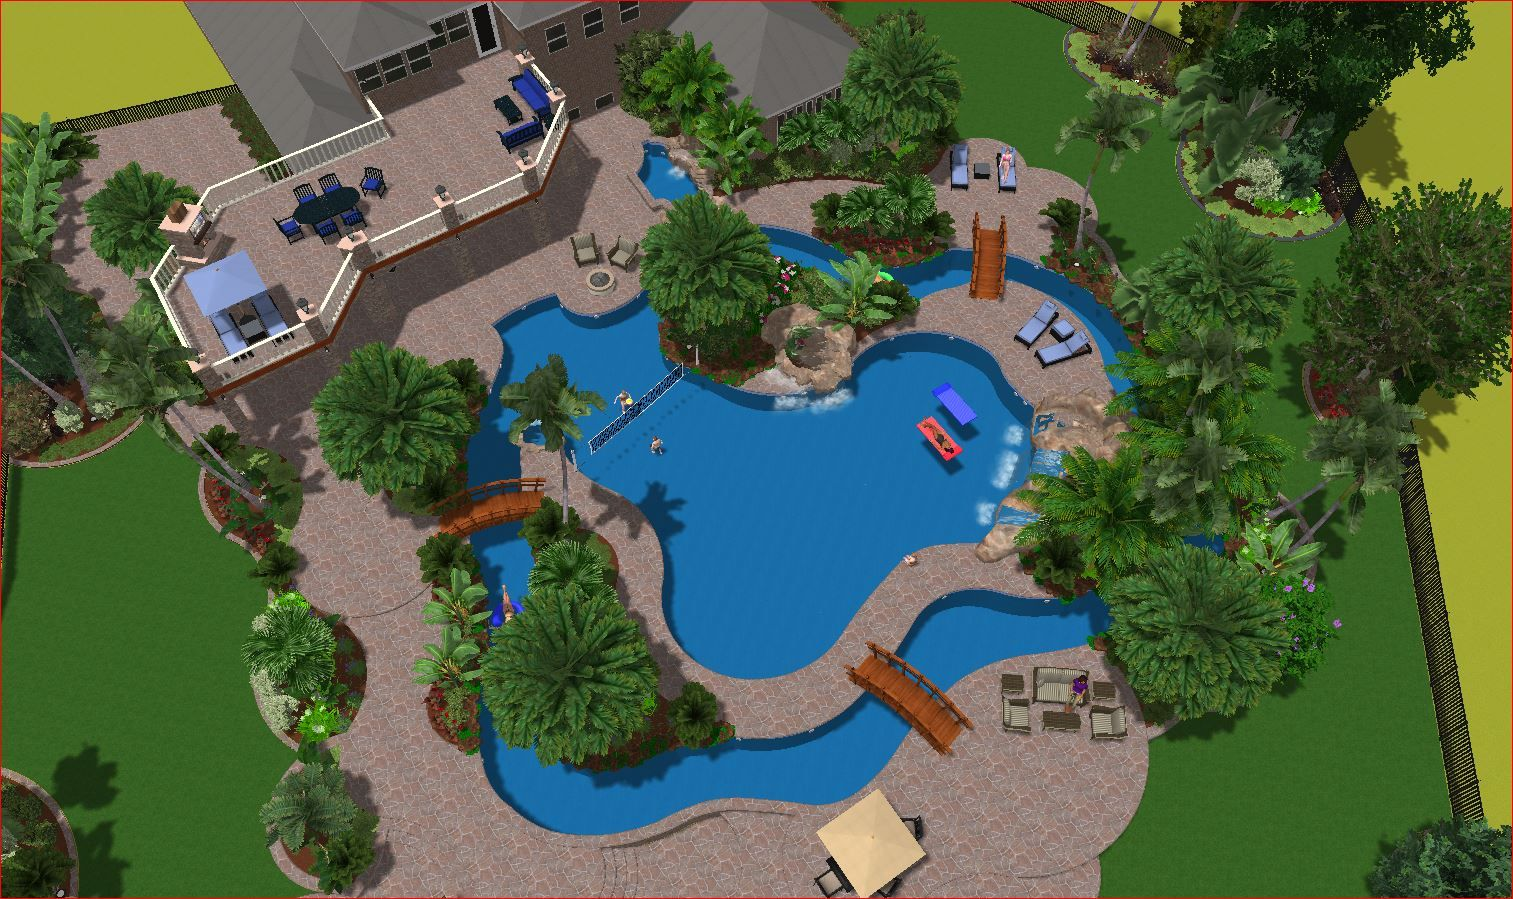 lazy river pool swimming pool designs swimming pools beautiful pools backyard pools pool ideas yard ideas rivers dream pools. Interior Design Ideas. Home Design Ideas